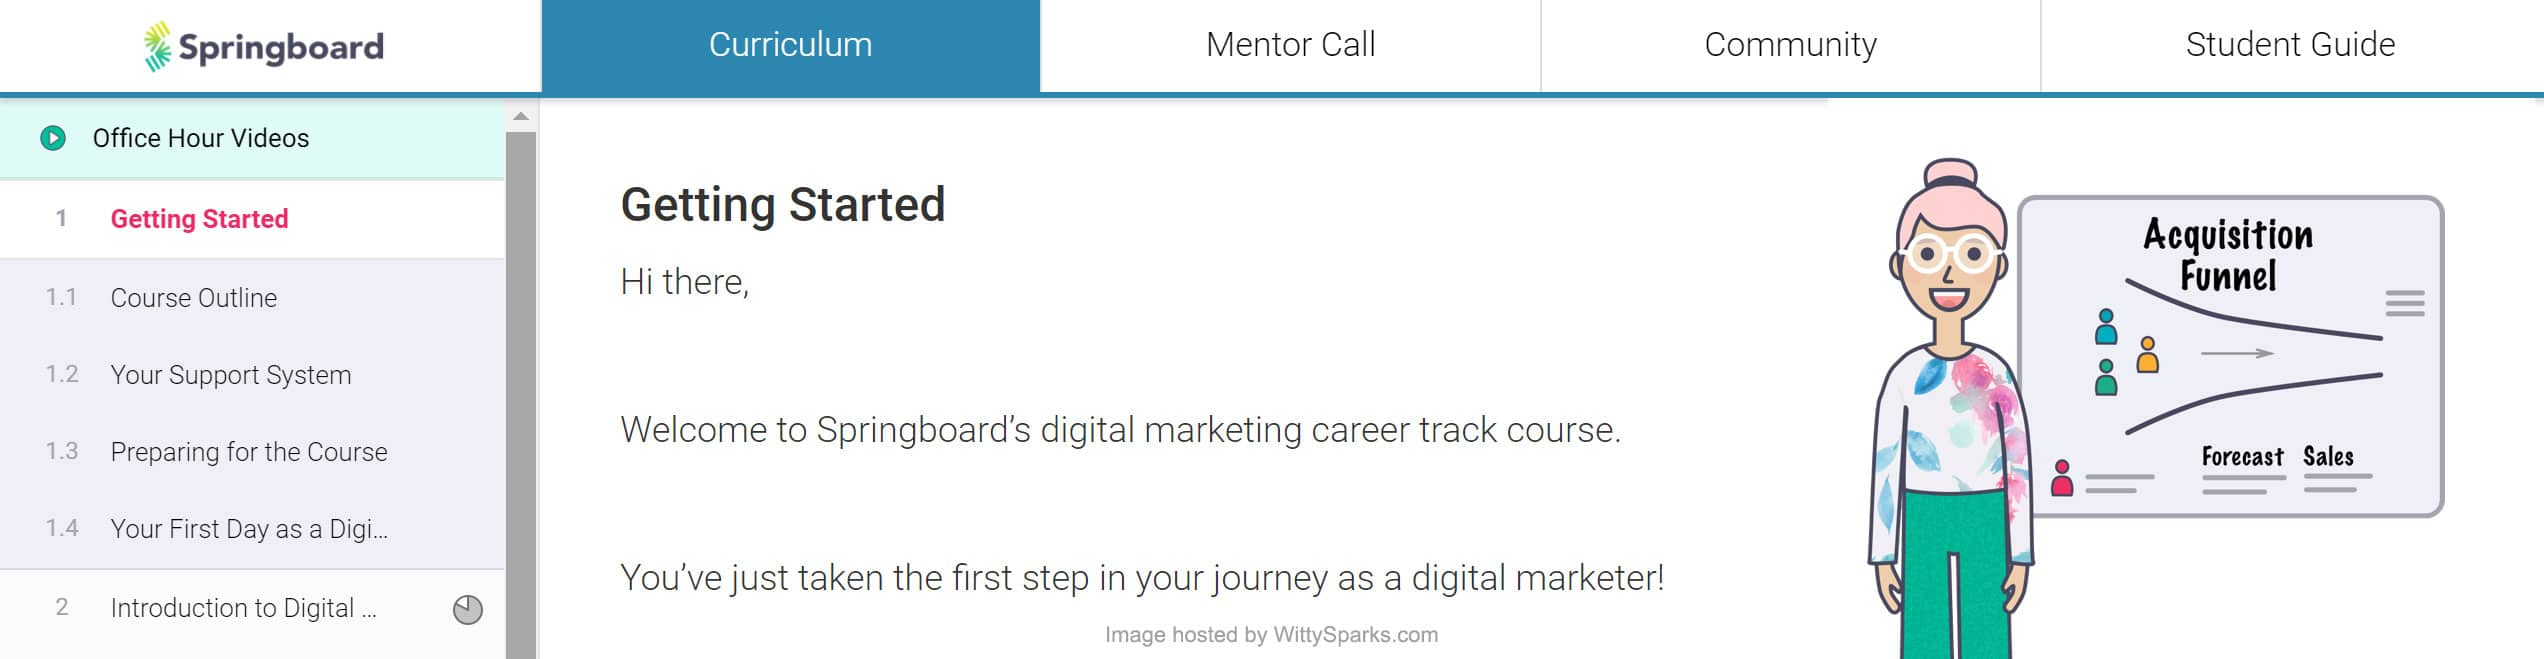 Springboard - Curriculum, Mentor Call, Community, Student Guide